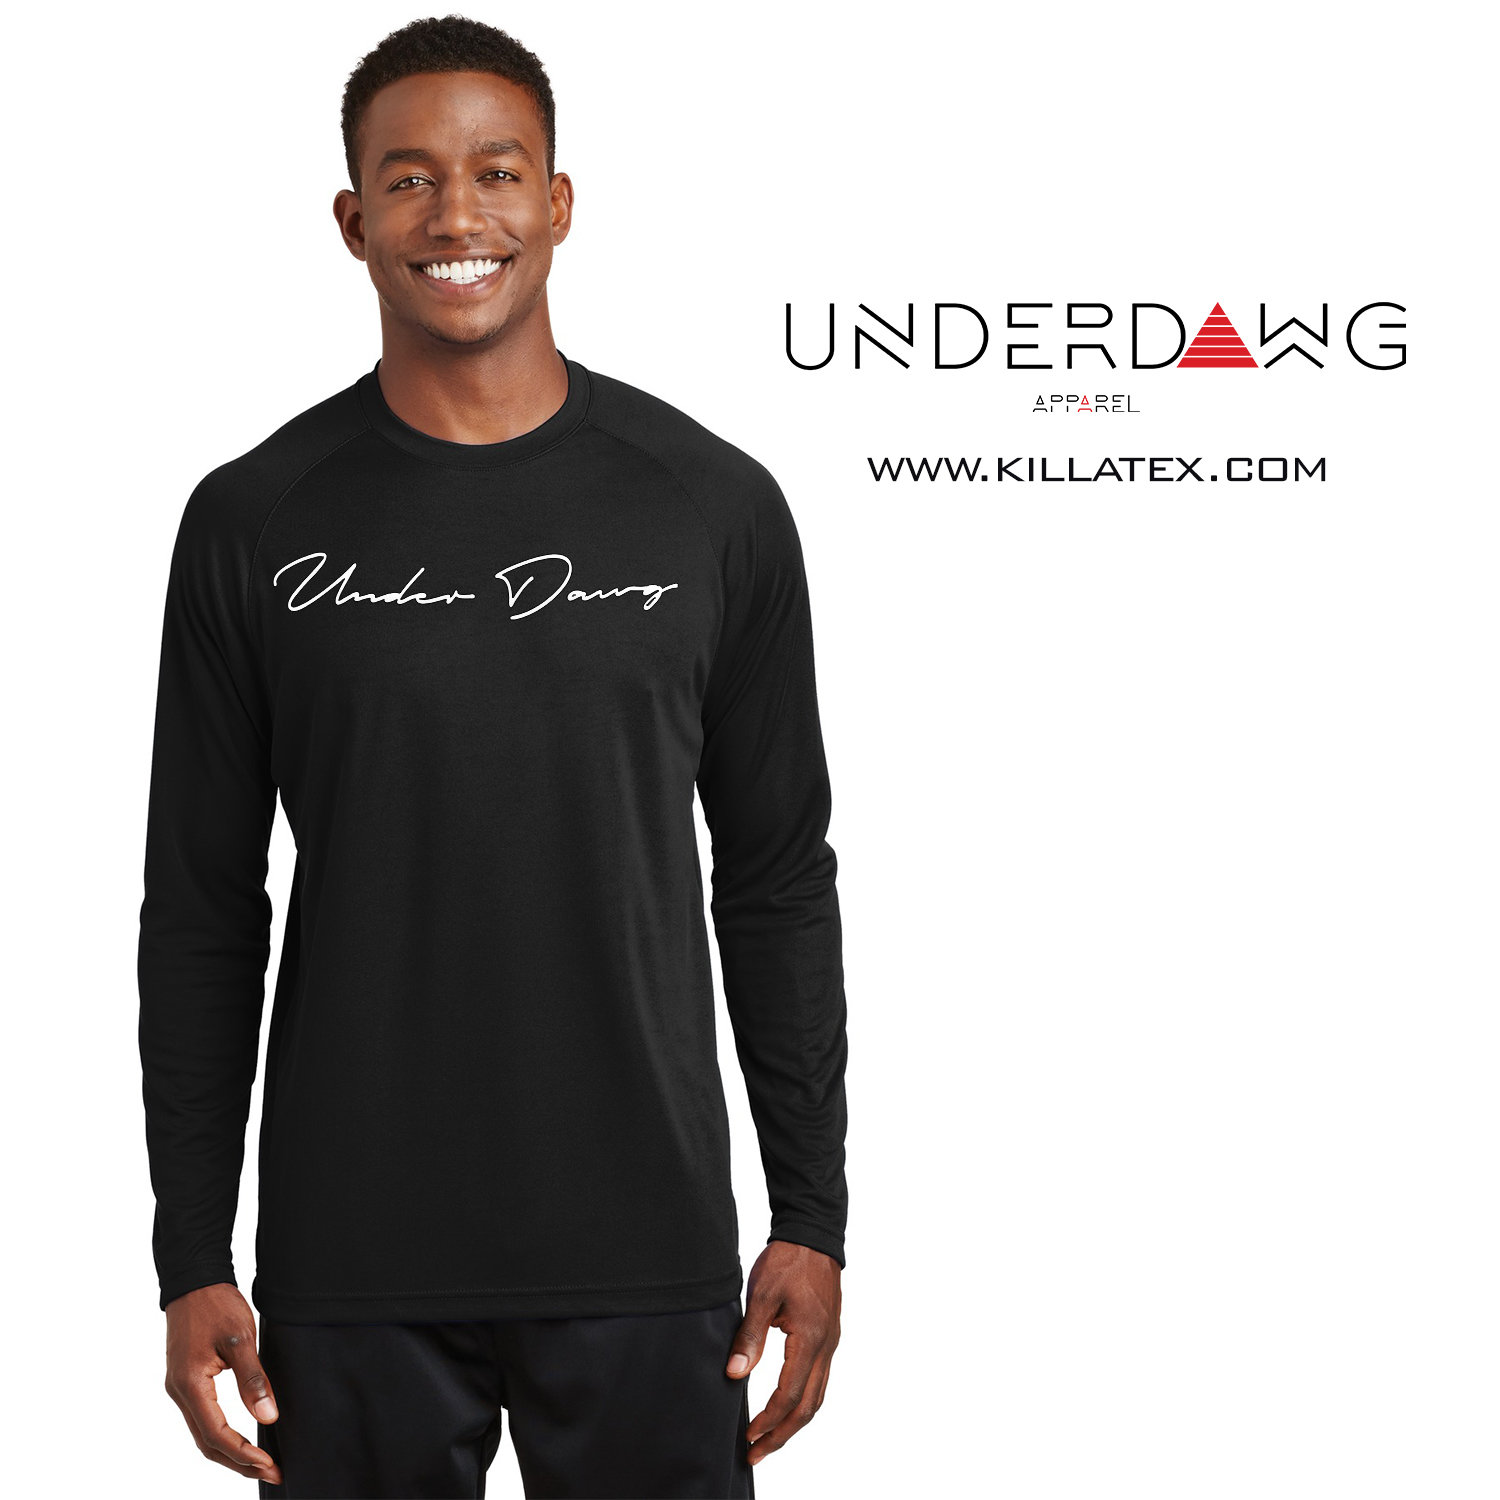 UnderDawg Long Sleeve T-Shirt 00012